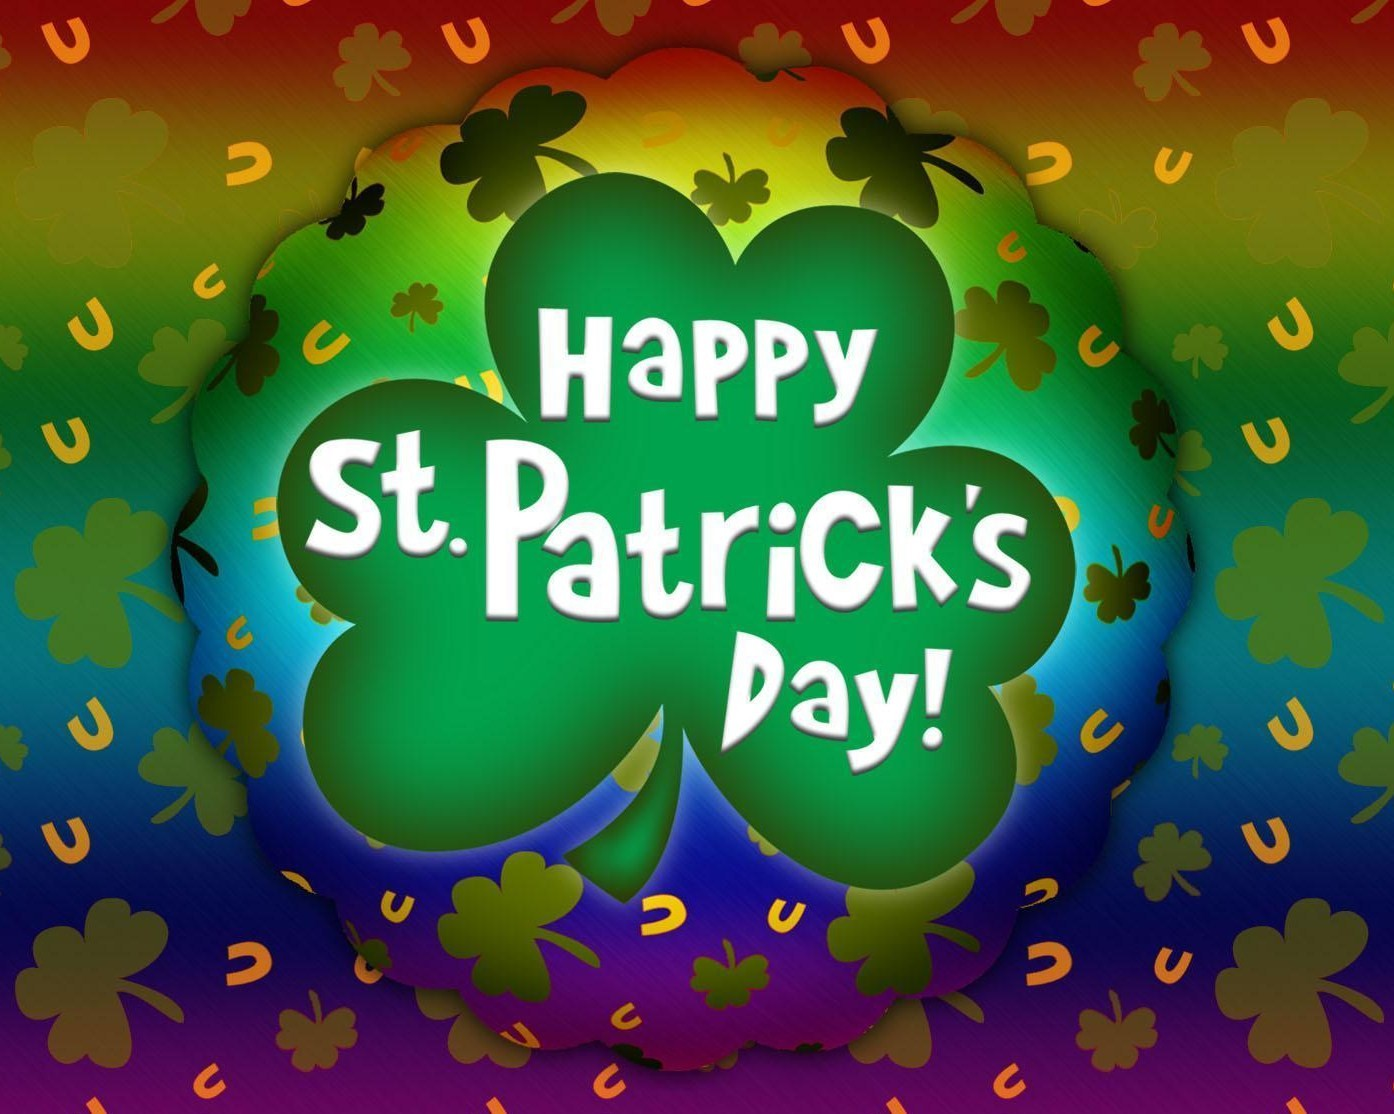 St Patrick Day Wallpapers Posted By Sarah Johnson